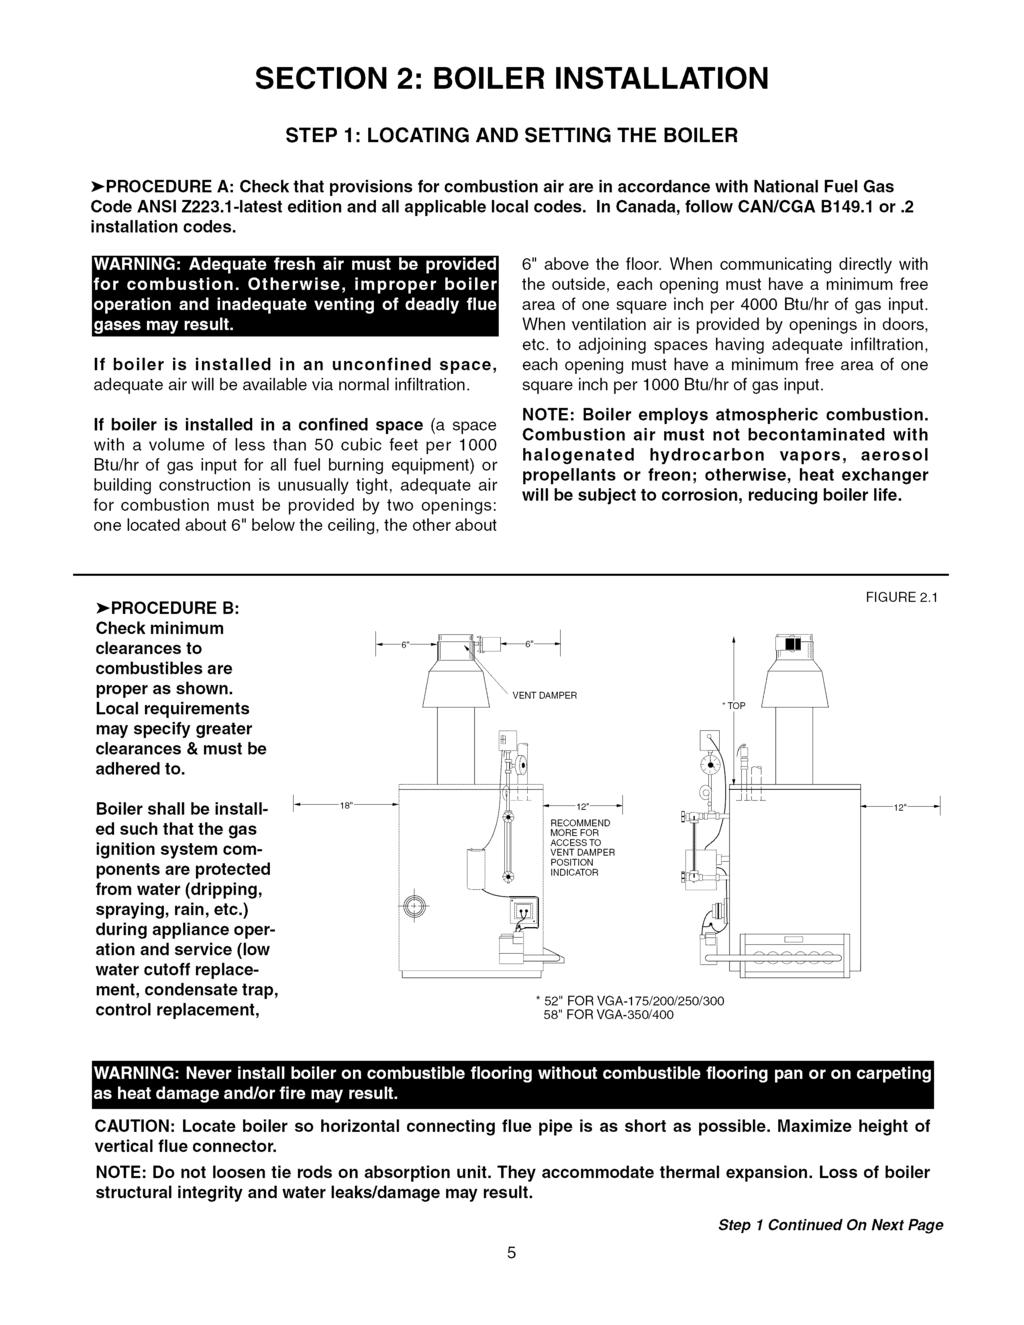 Hydrotherm Vgab Series Installation Operation Maintenance Manual Furnace Spill Switch With Wiring Diagrams Section Boiler Step Locating And Setting The Procedure A Check That